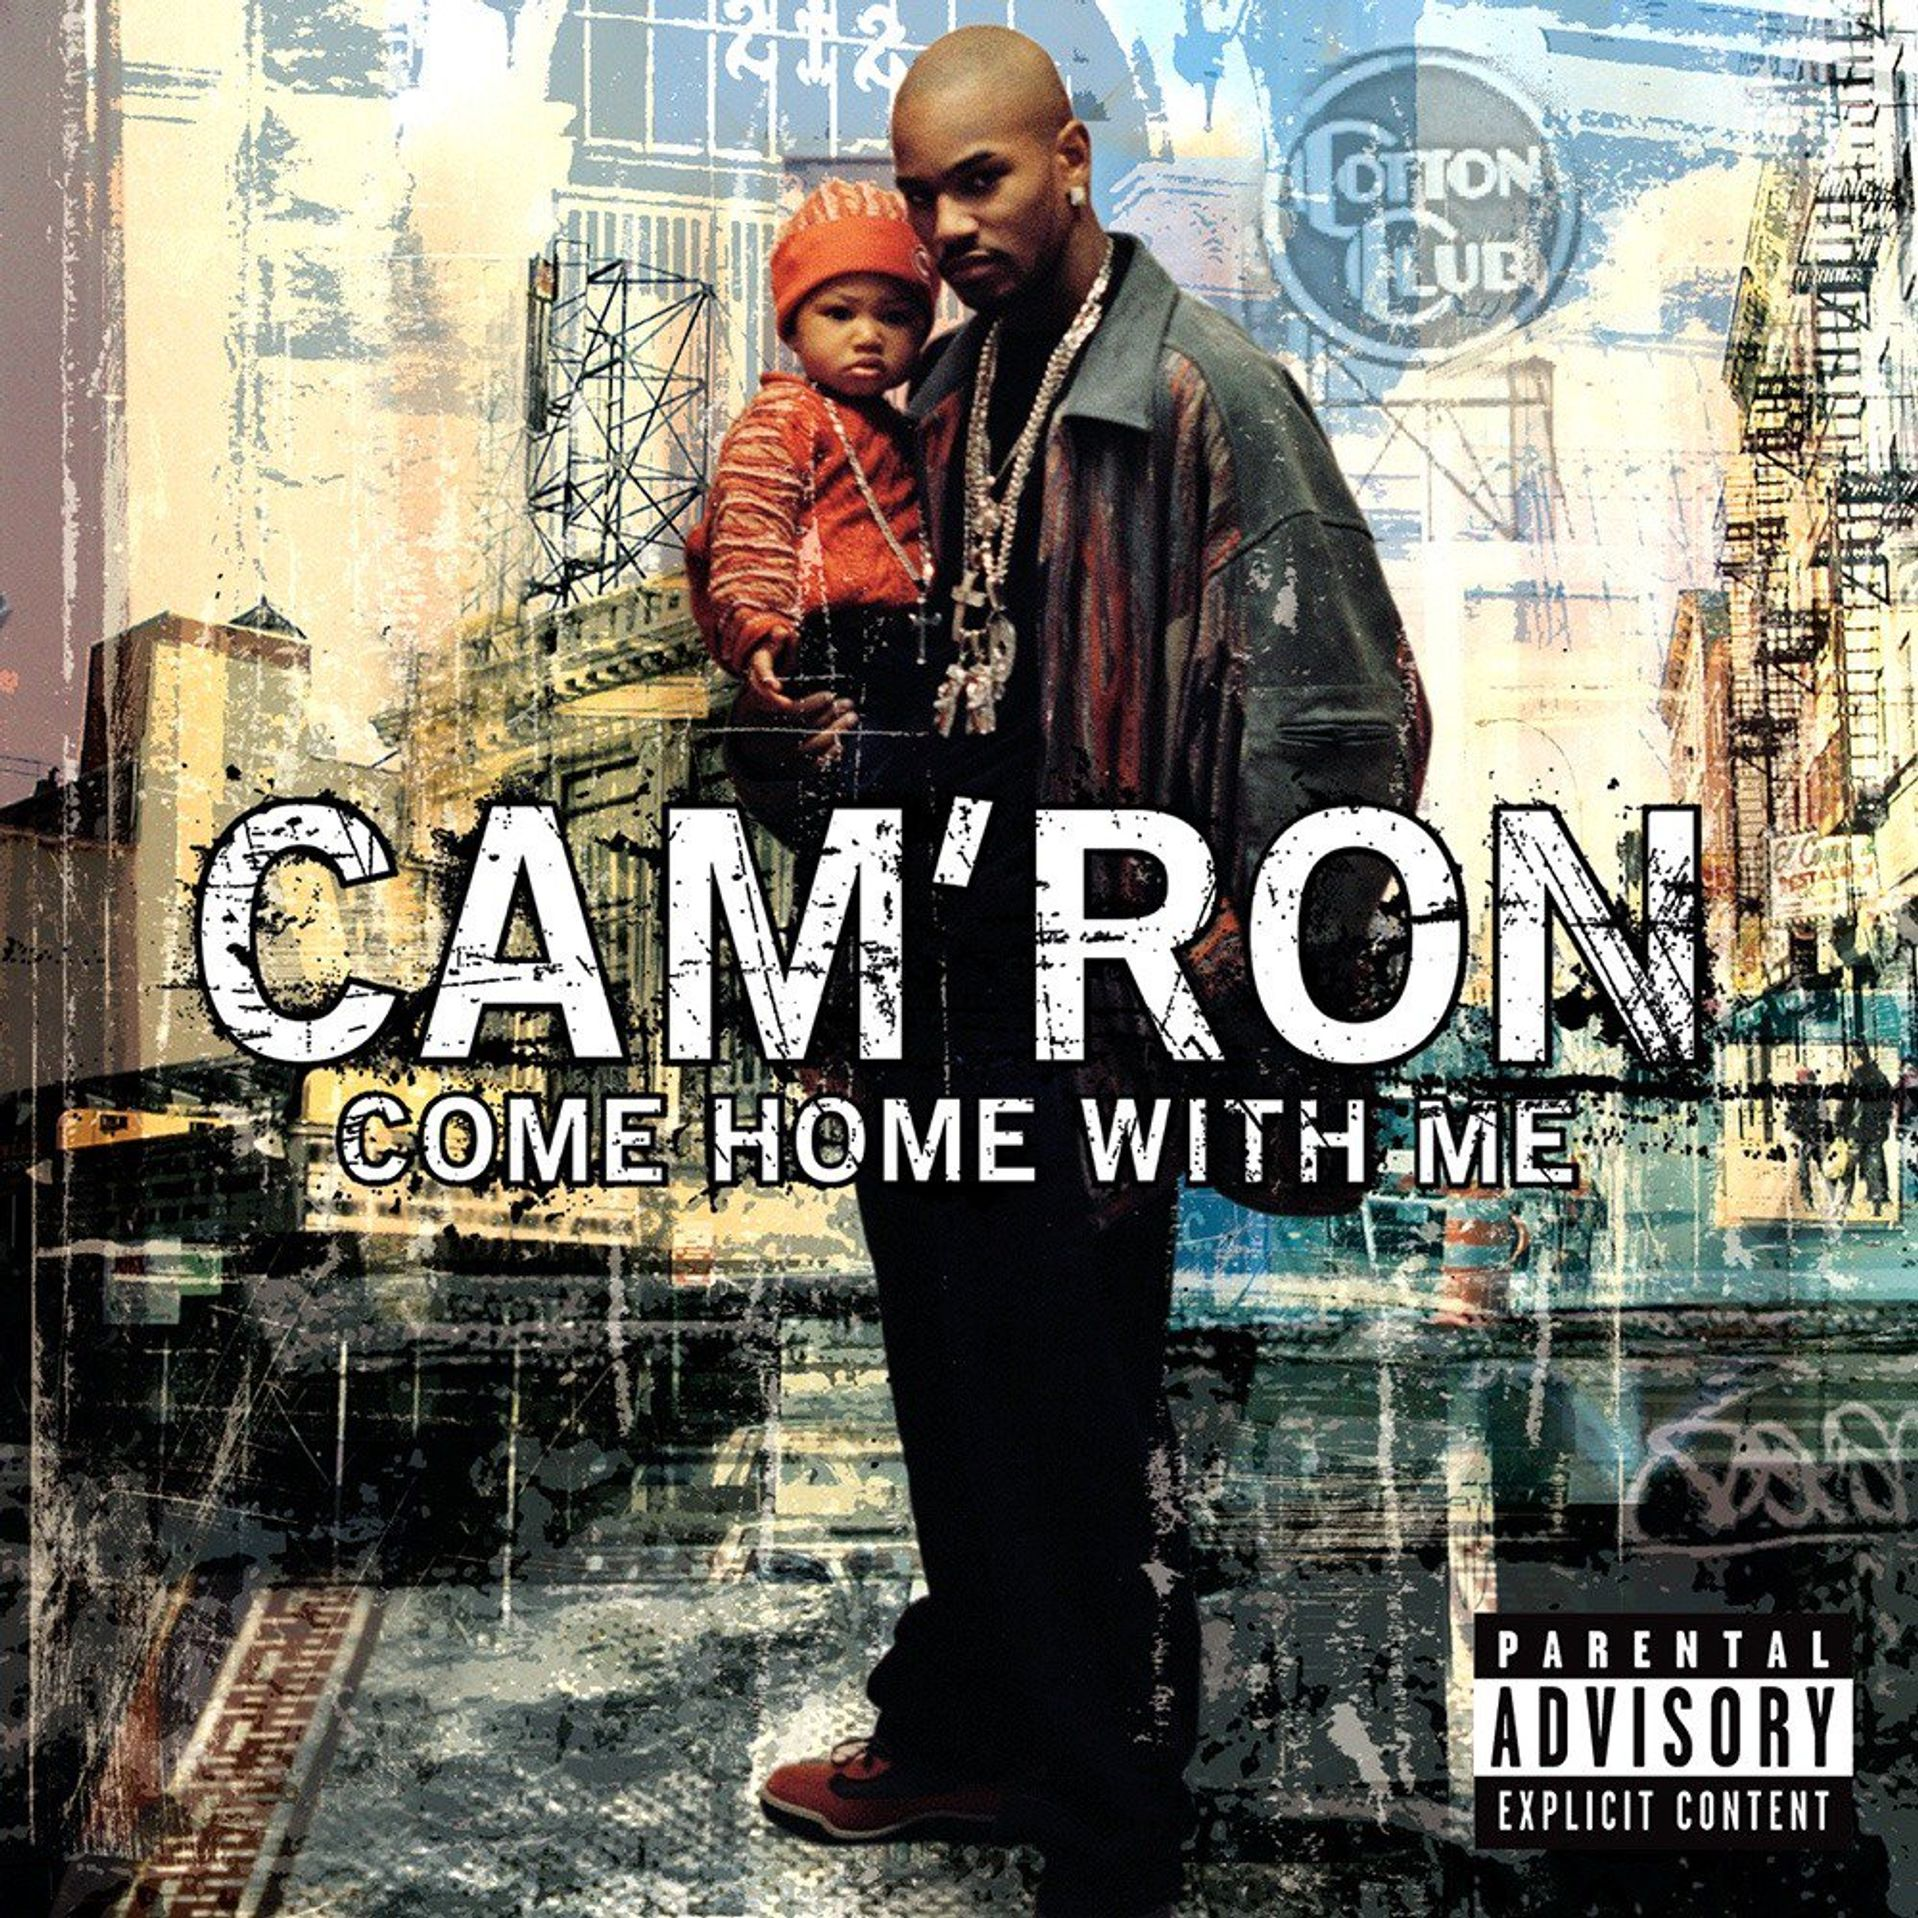 Album Title: Come Home with Me by: Cam